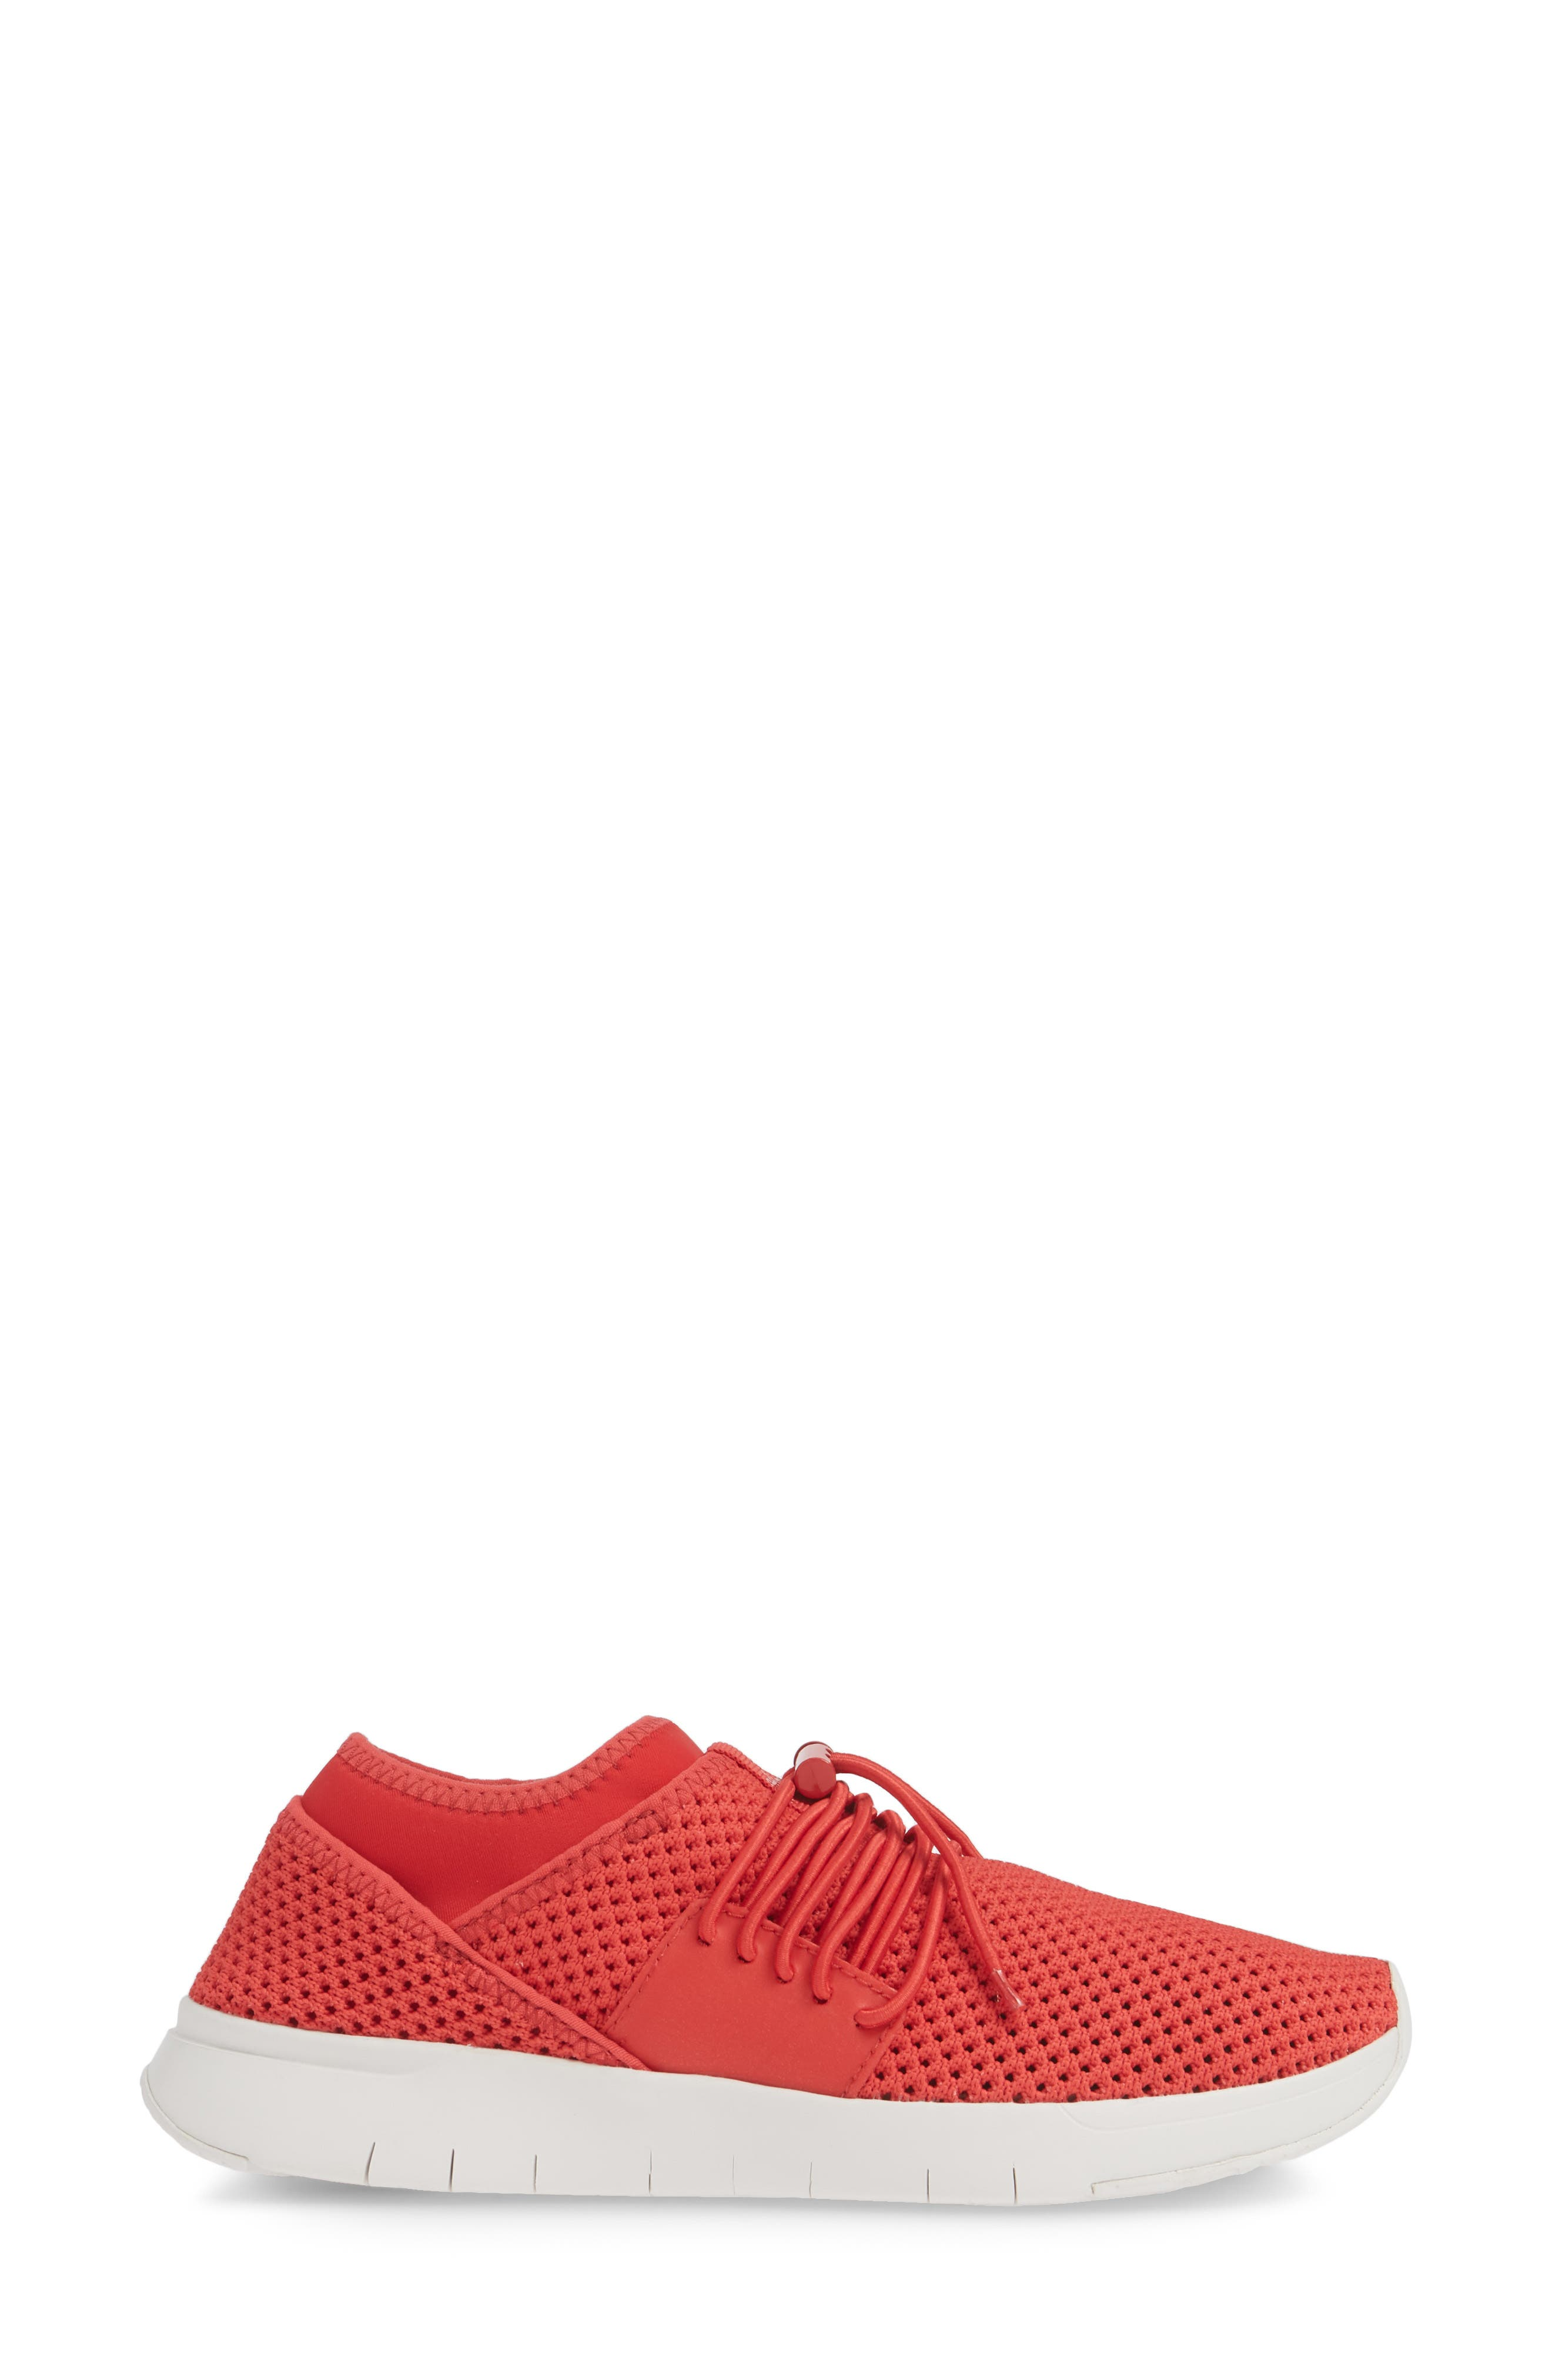 FITFLOP, Airmesh Sneaker, Alternate thumbnail 3, color, PASSION RED